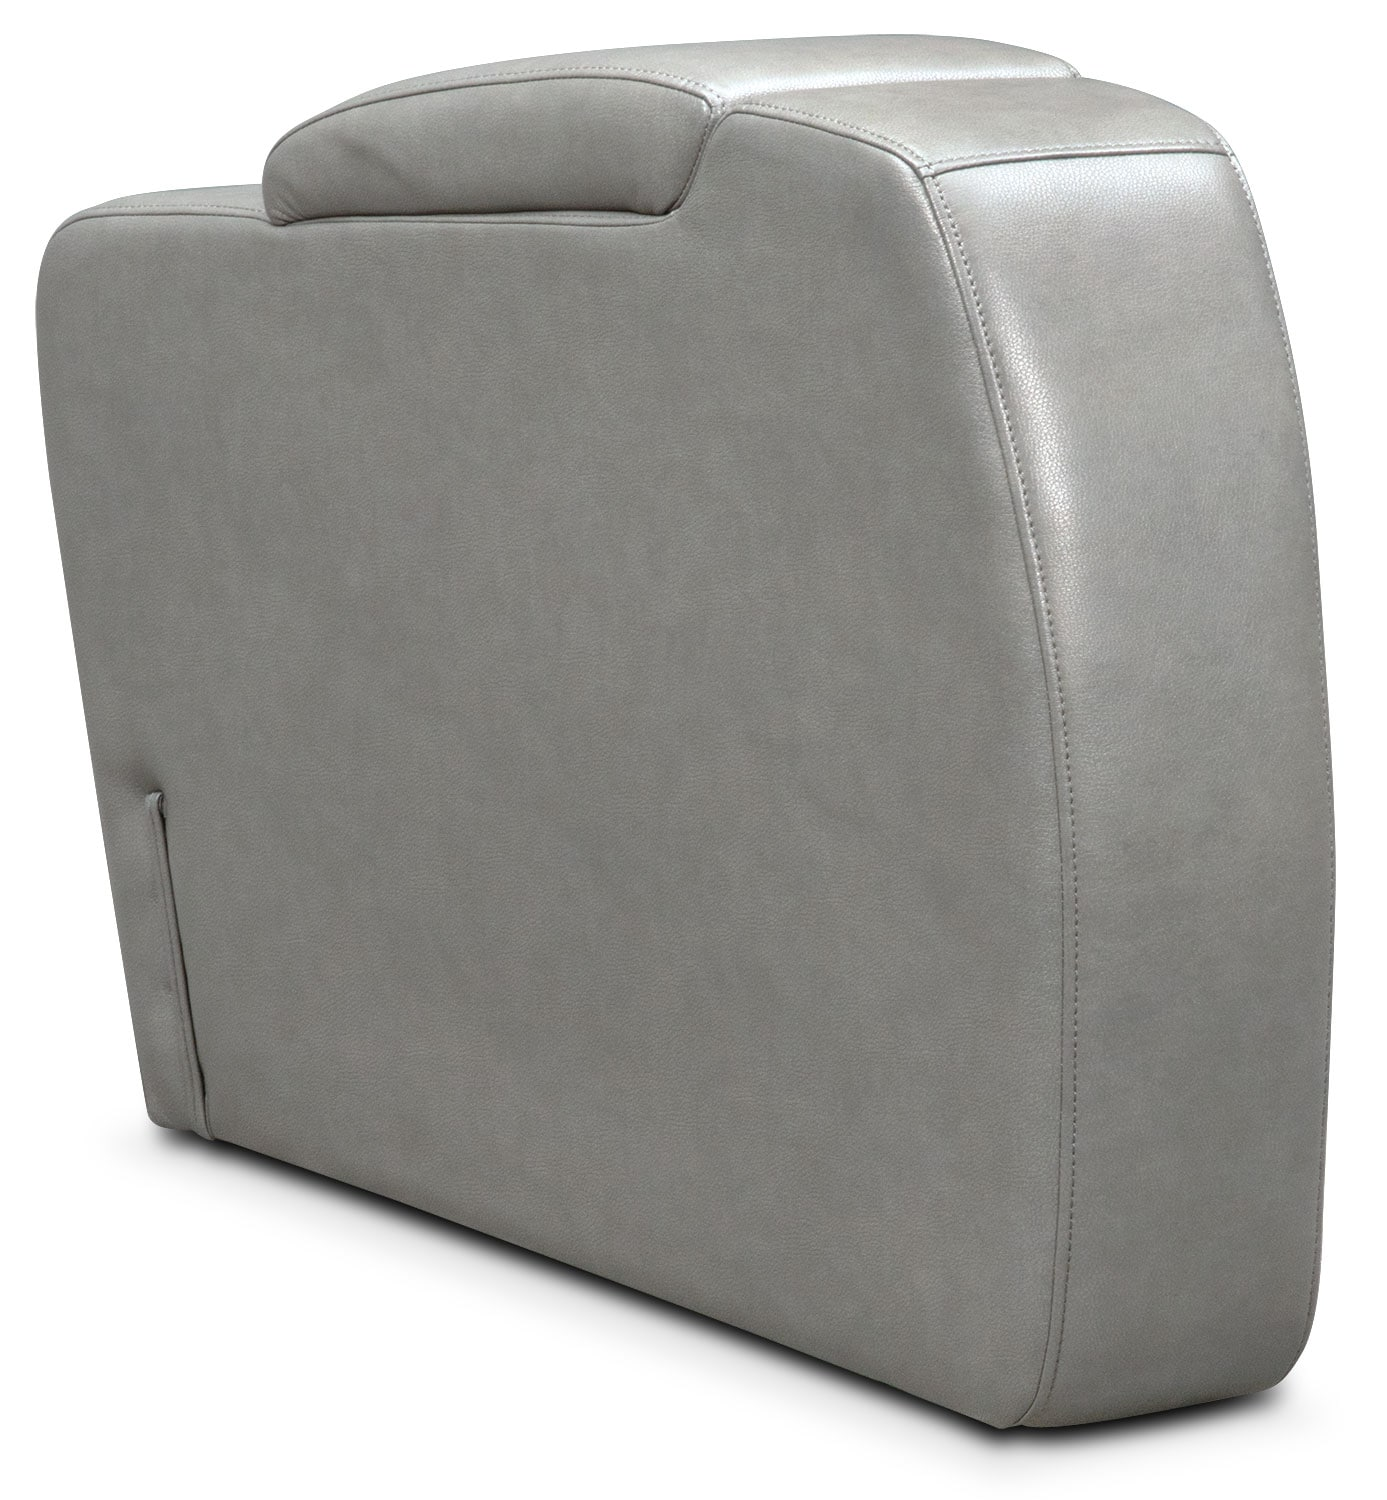 Living Room Furniture - Bravo Storage Console - Gray